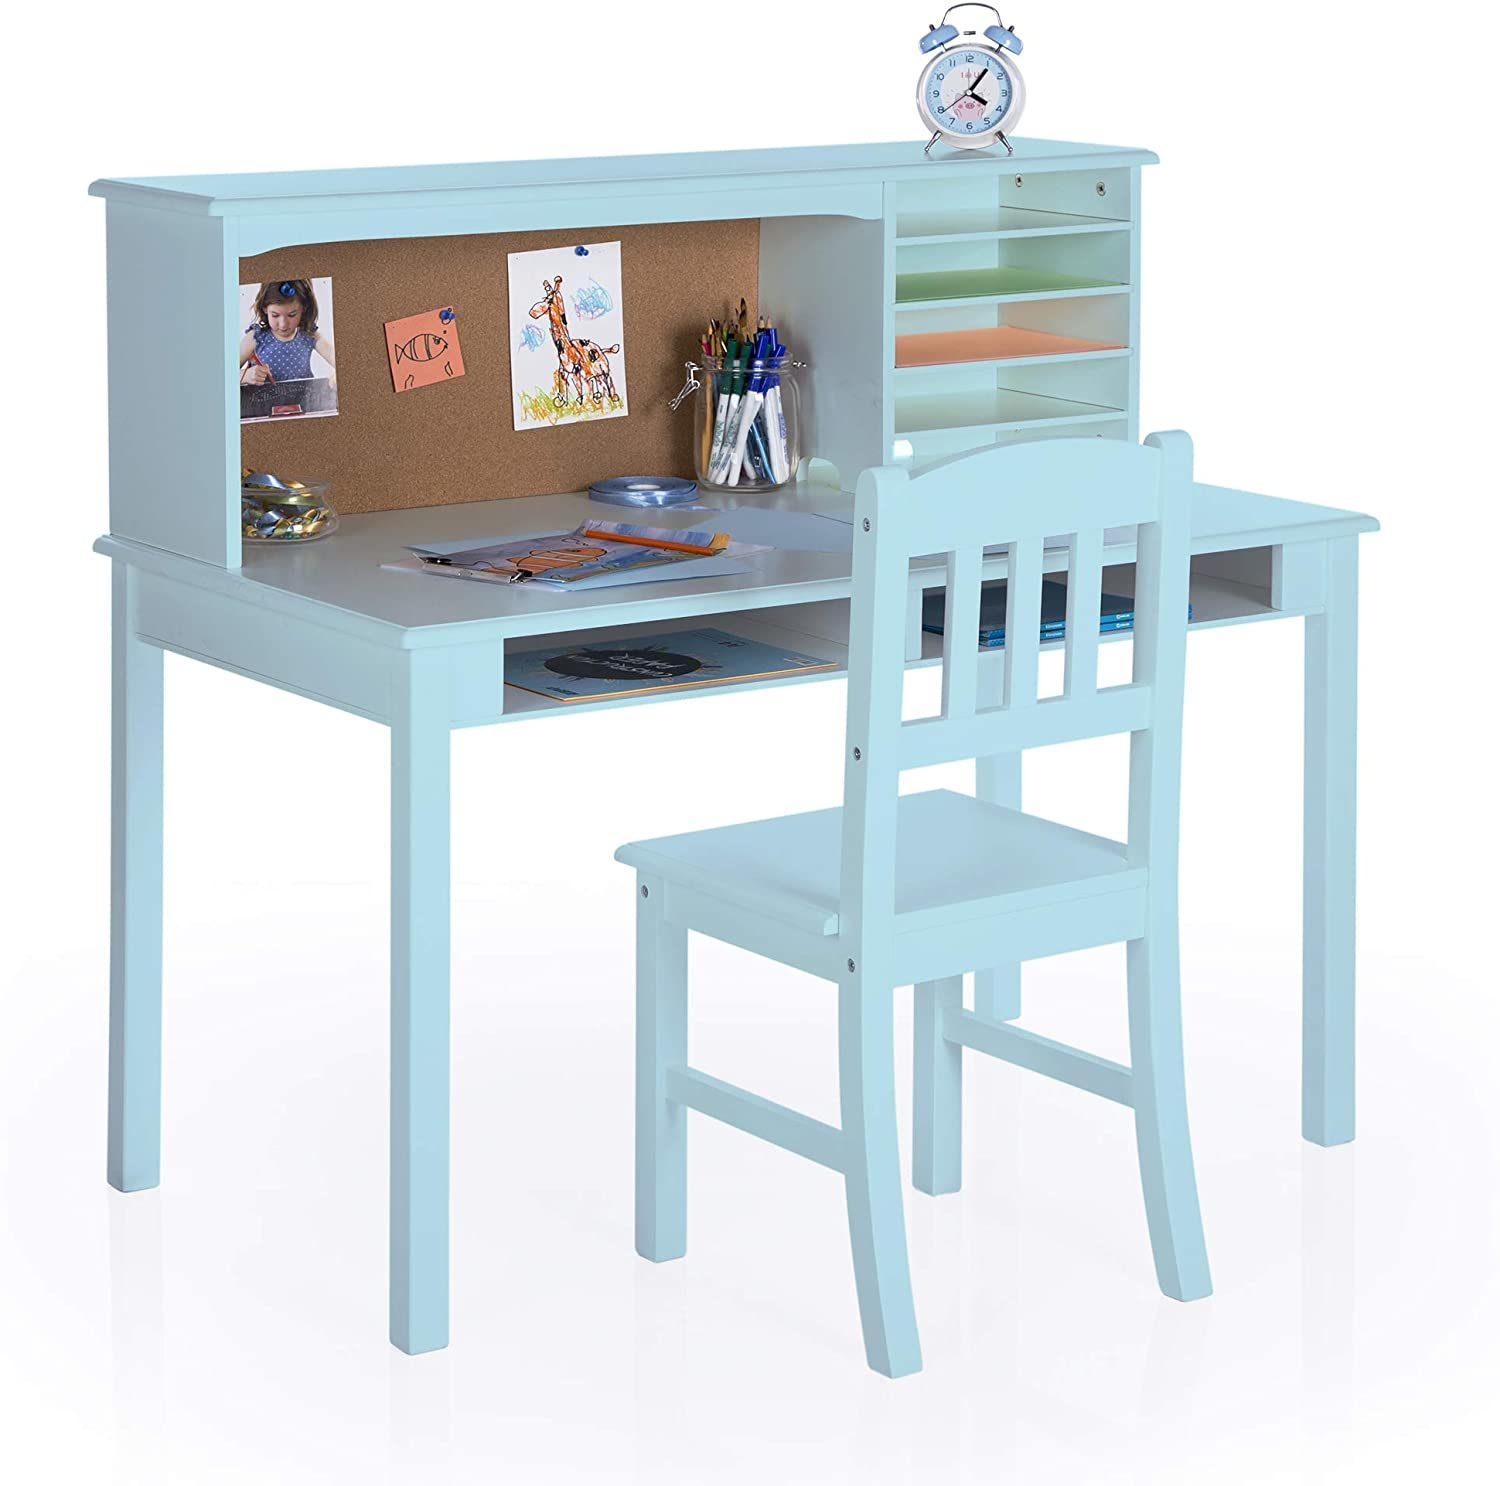 China Children S Media Desk And Chair Set Student S Study Computer Workstation Wooden Kids Bedroom Furniture China Preschool Table Wooden Preschool Table